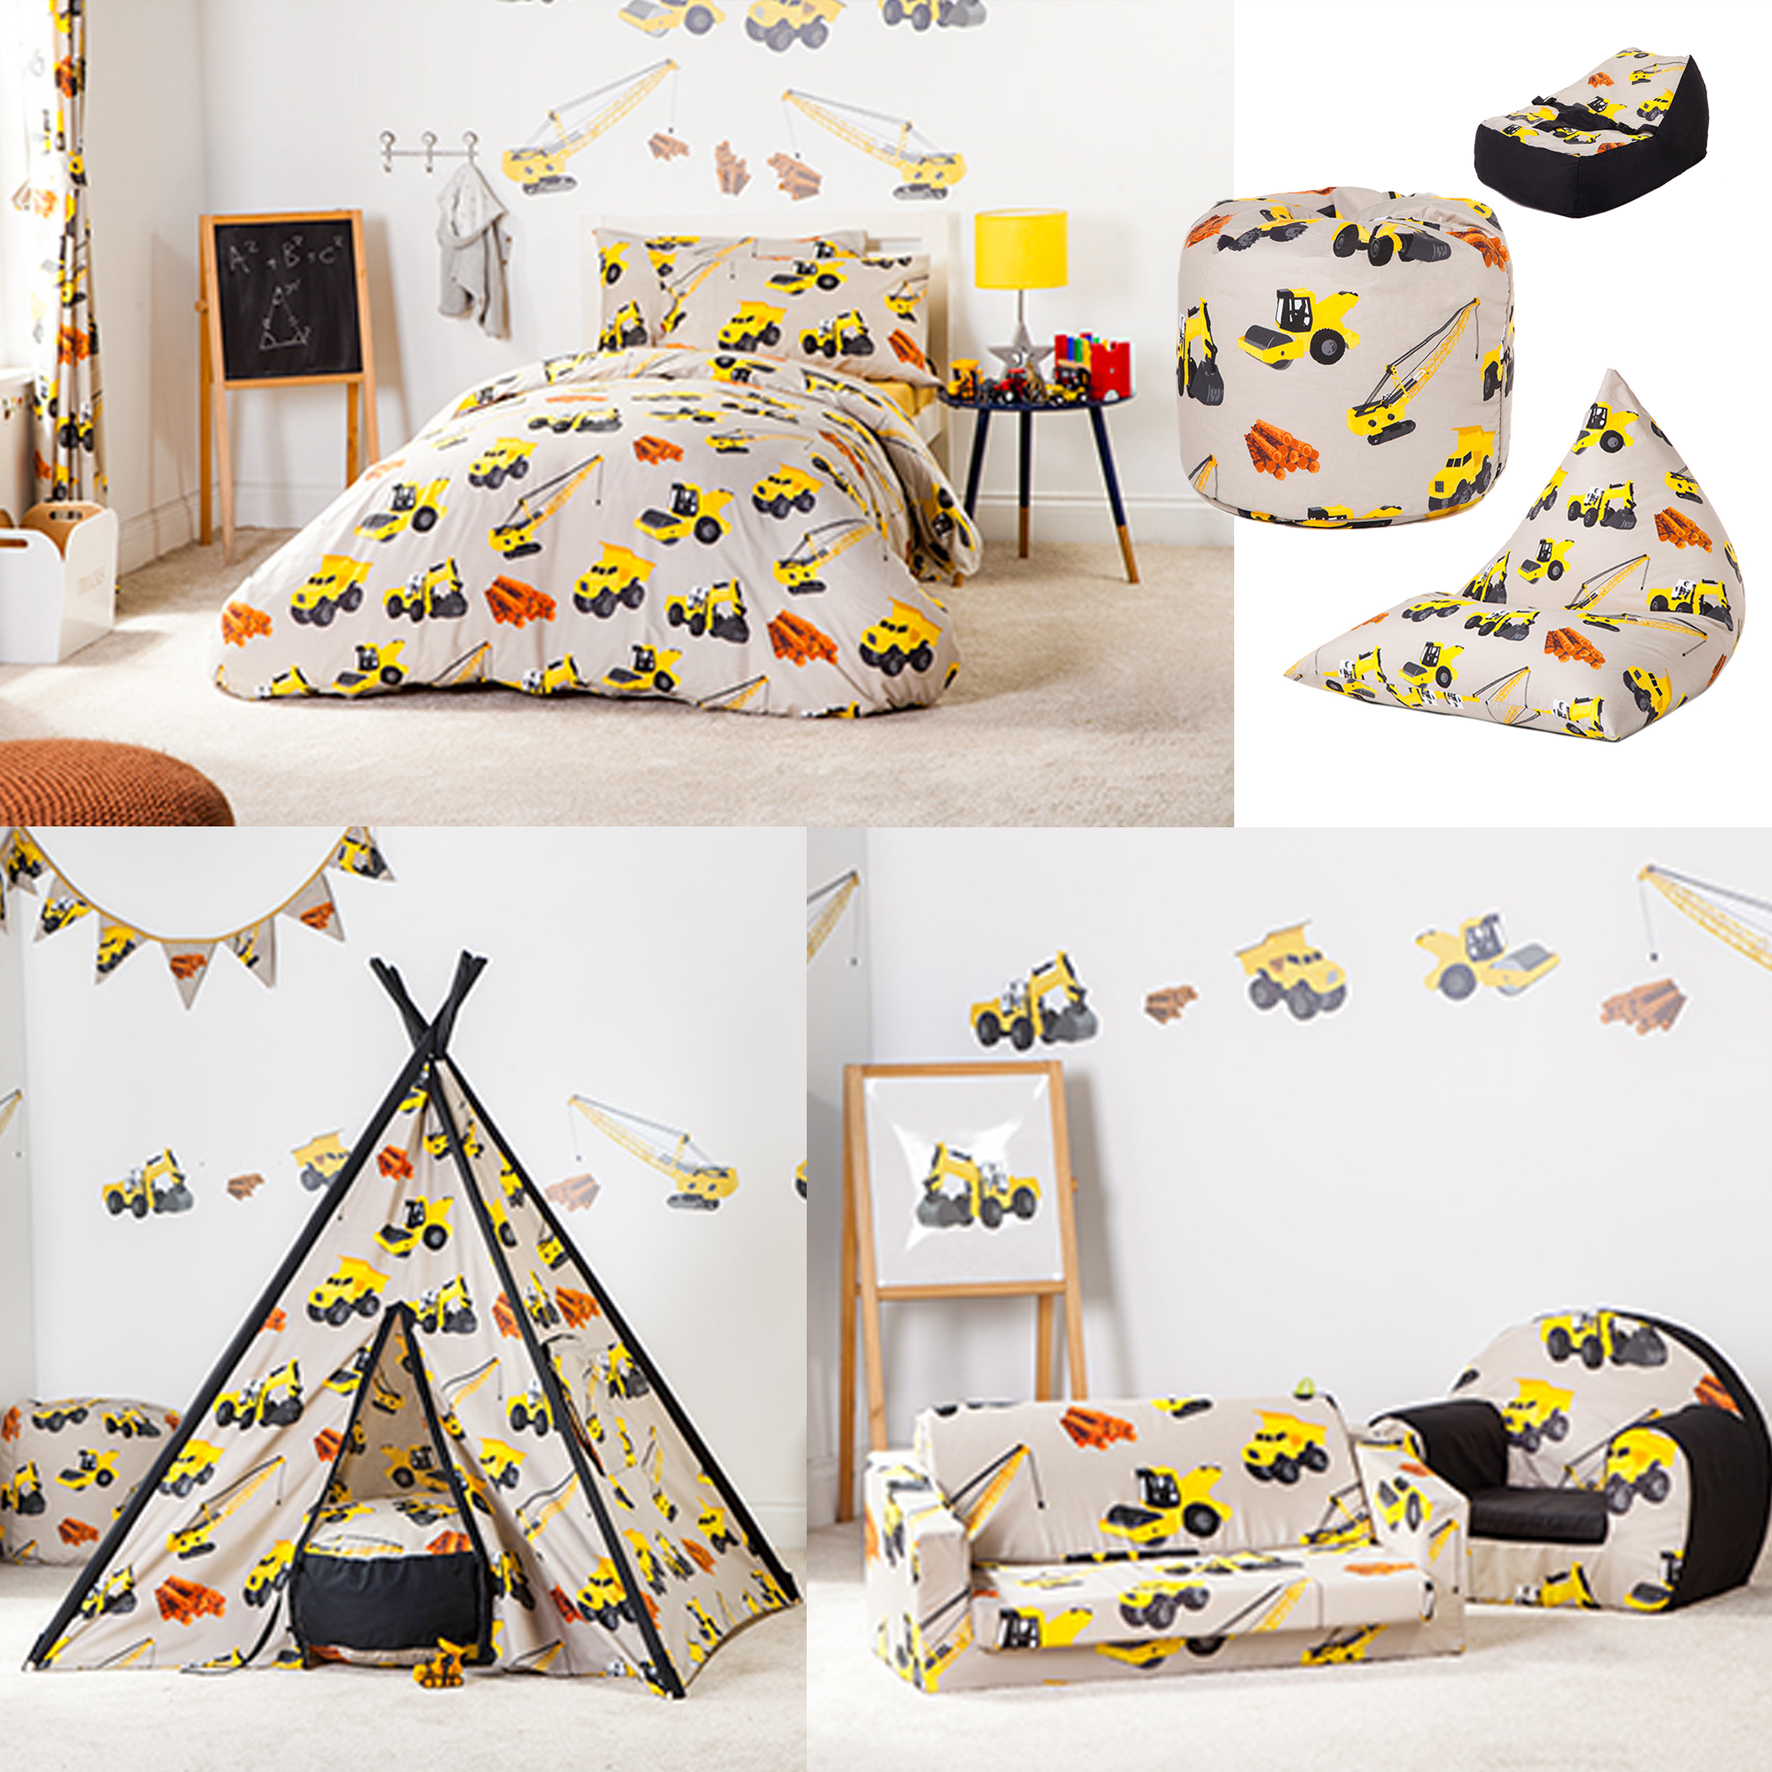 gr ber design kinder bettw sche schlafzimmer m bel. Black Bedroom Furniture Sets. Home Design Ideas